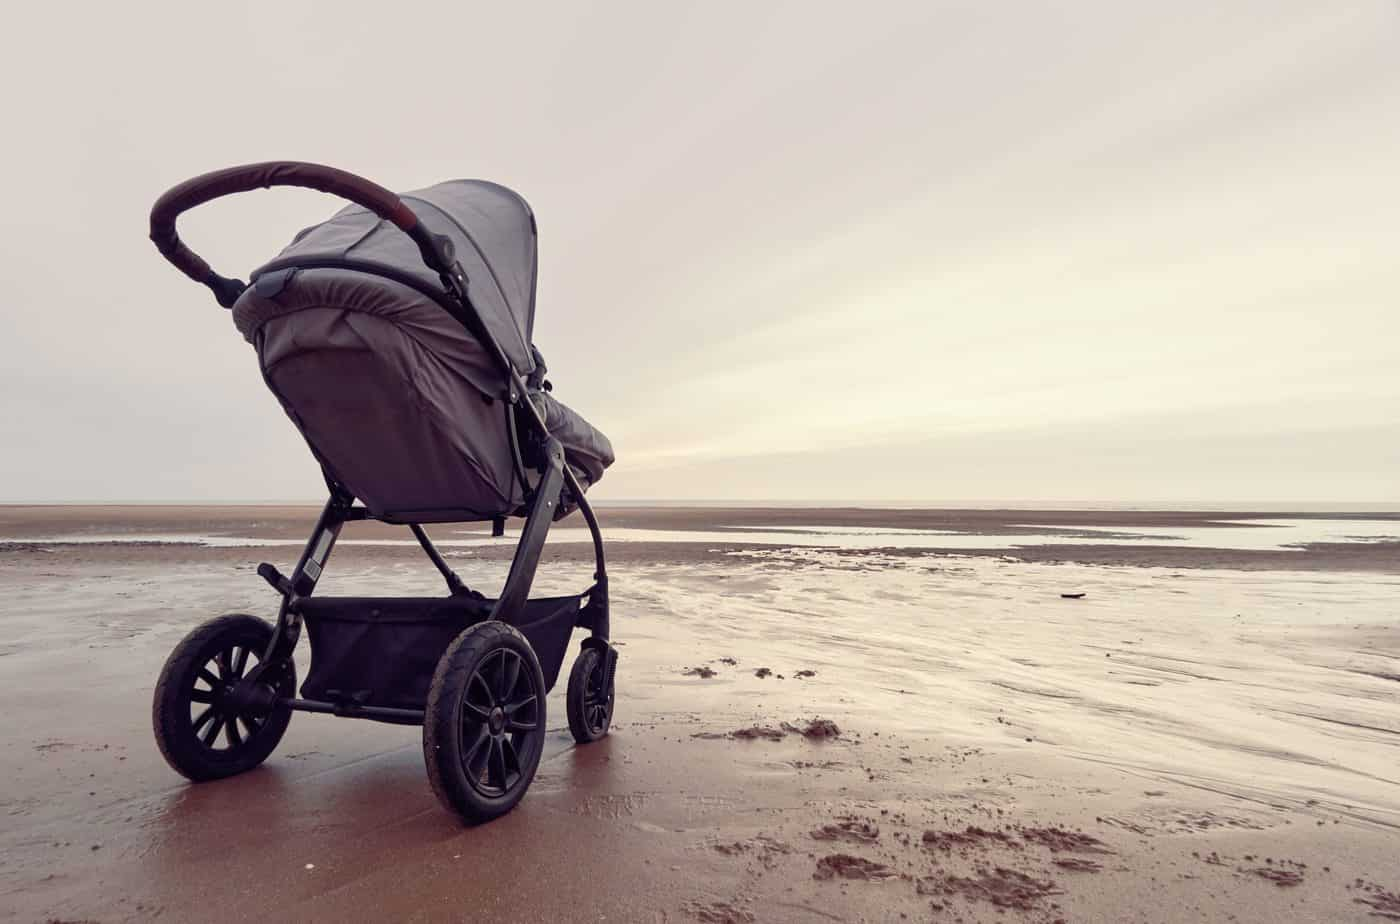 The Best Lightweight Stroller To Buy in 2020